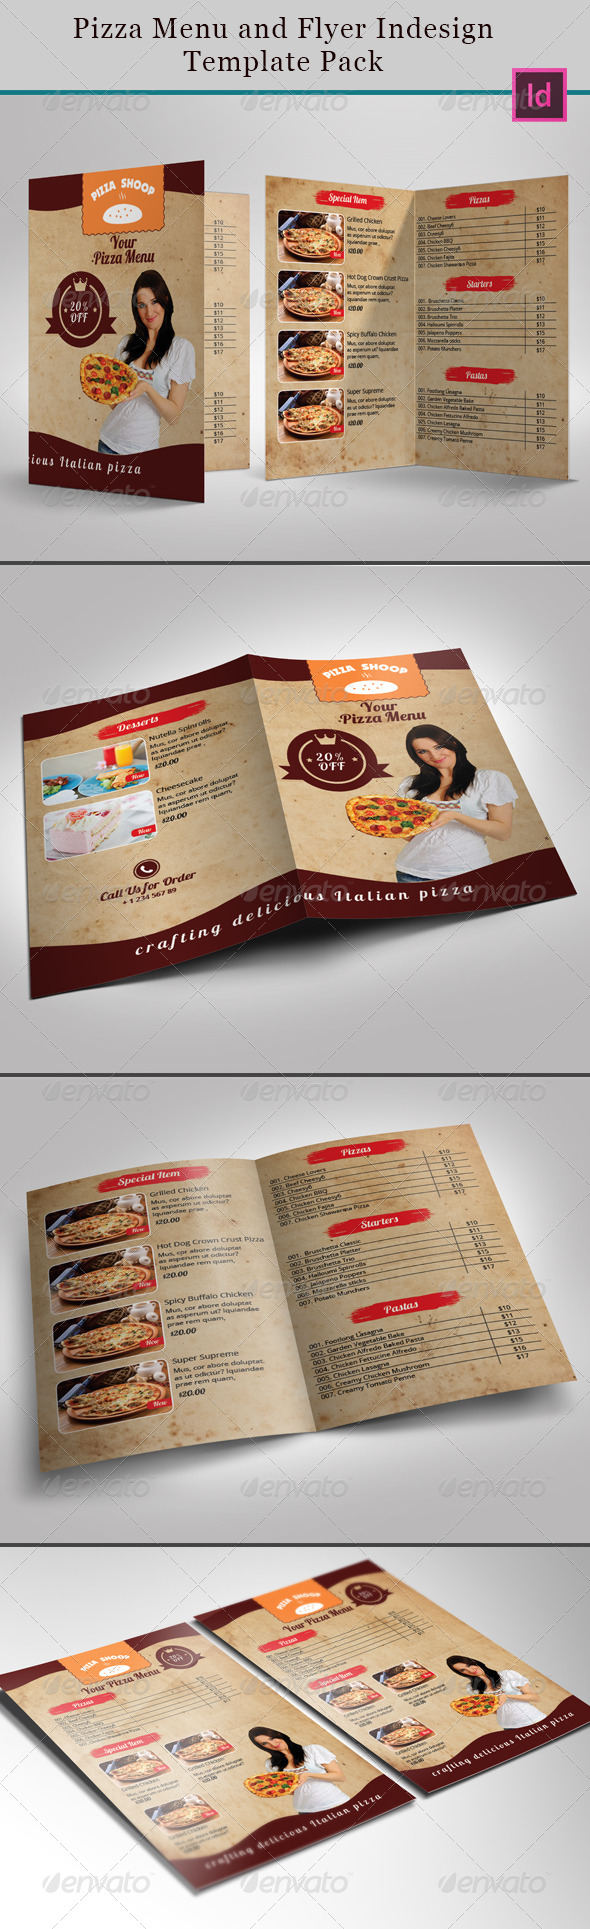 Pizza Menu and Flyer Indesign Template Pack - Brochures Print Templates